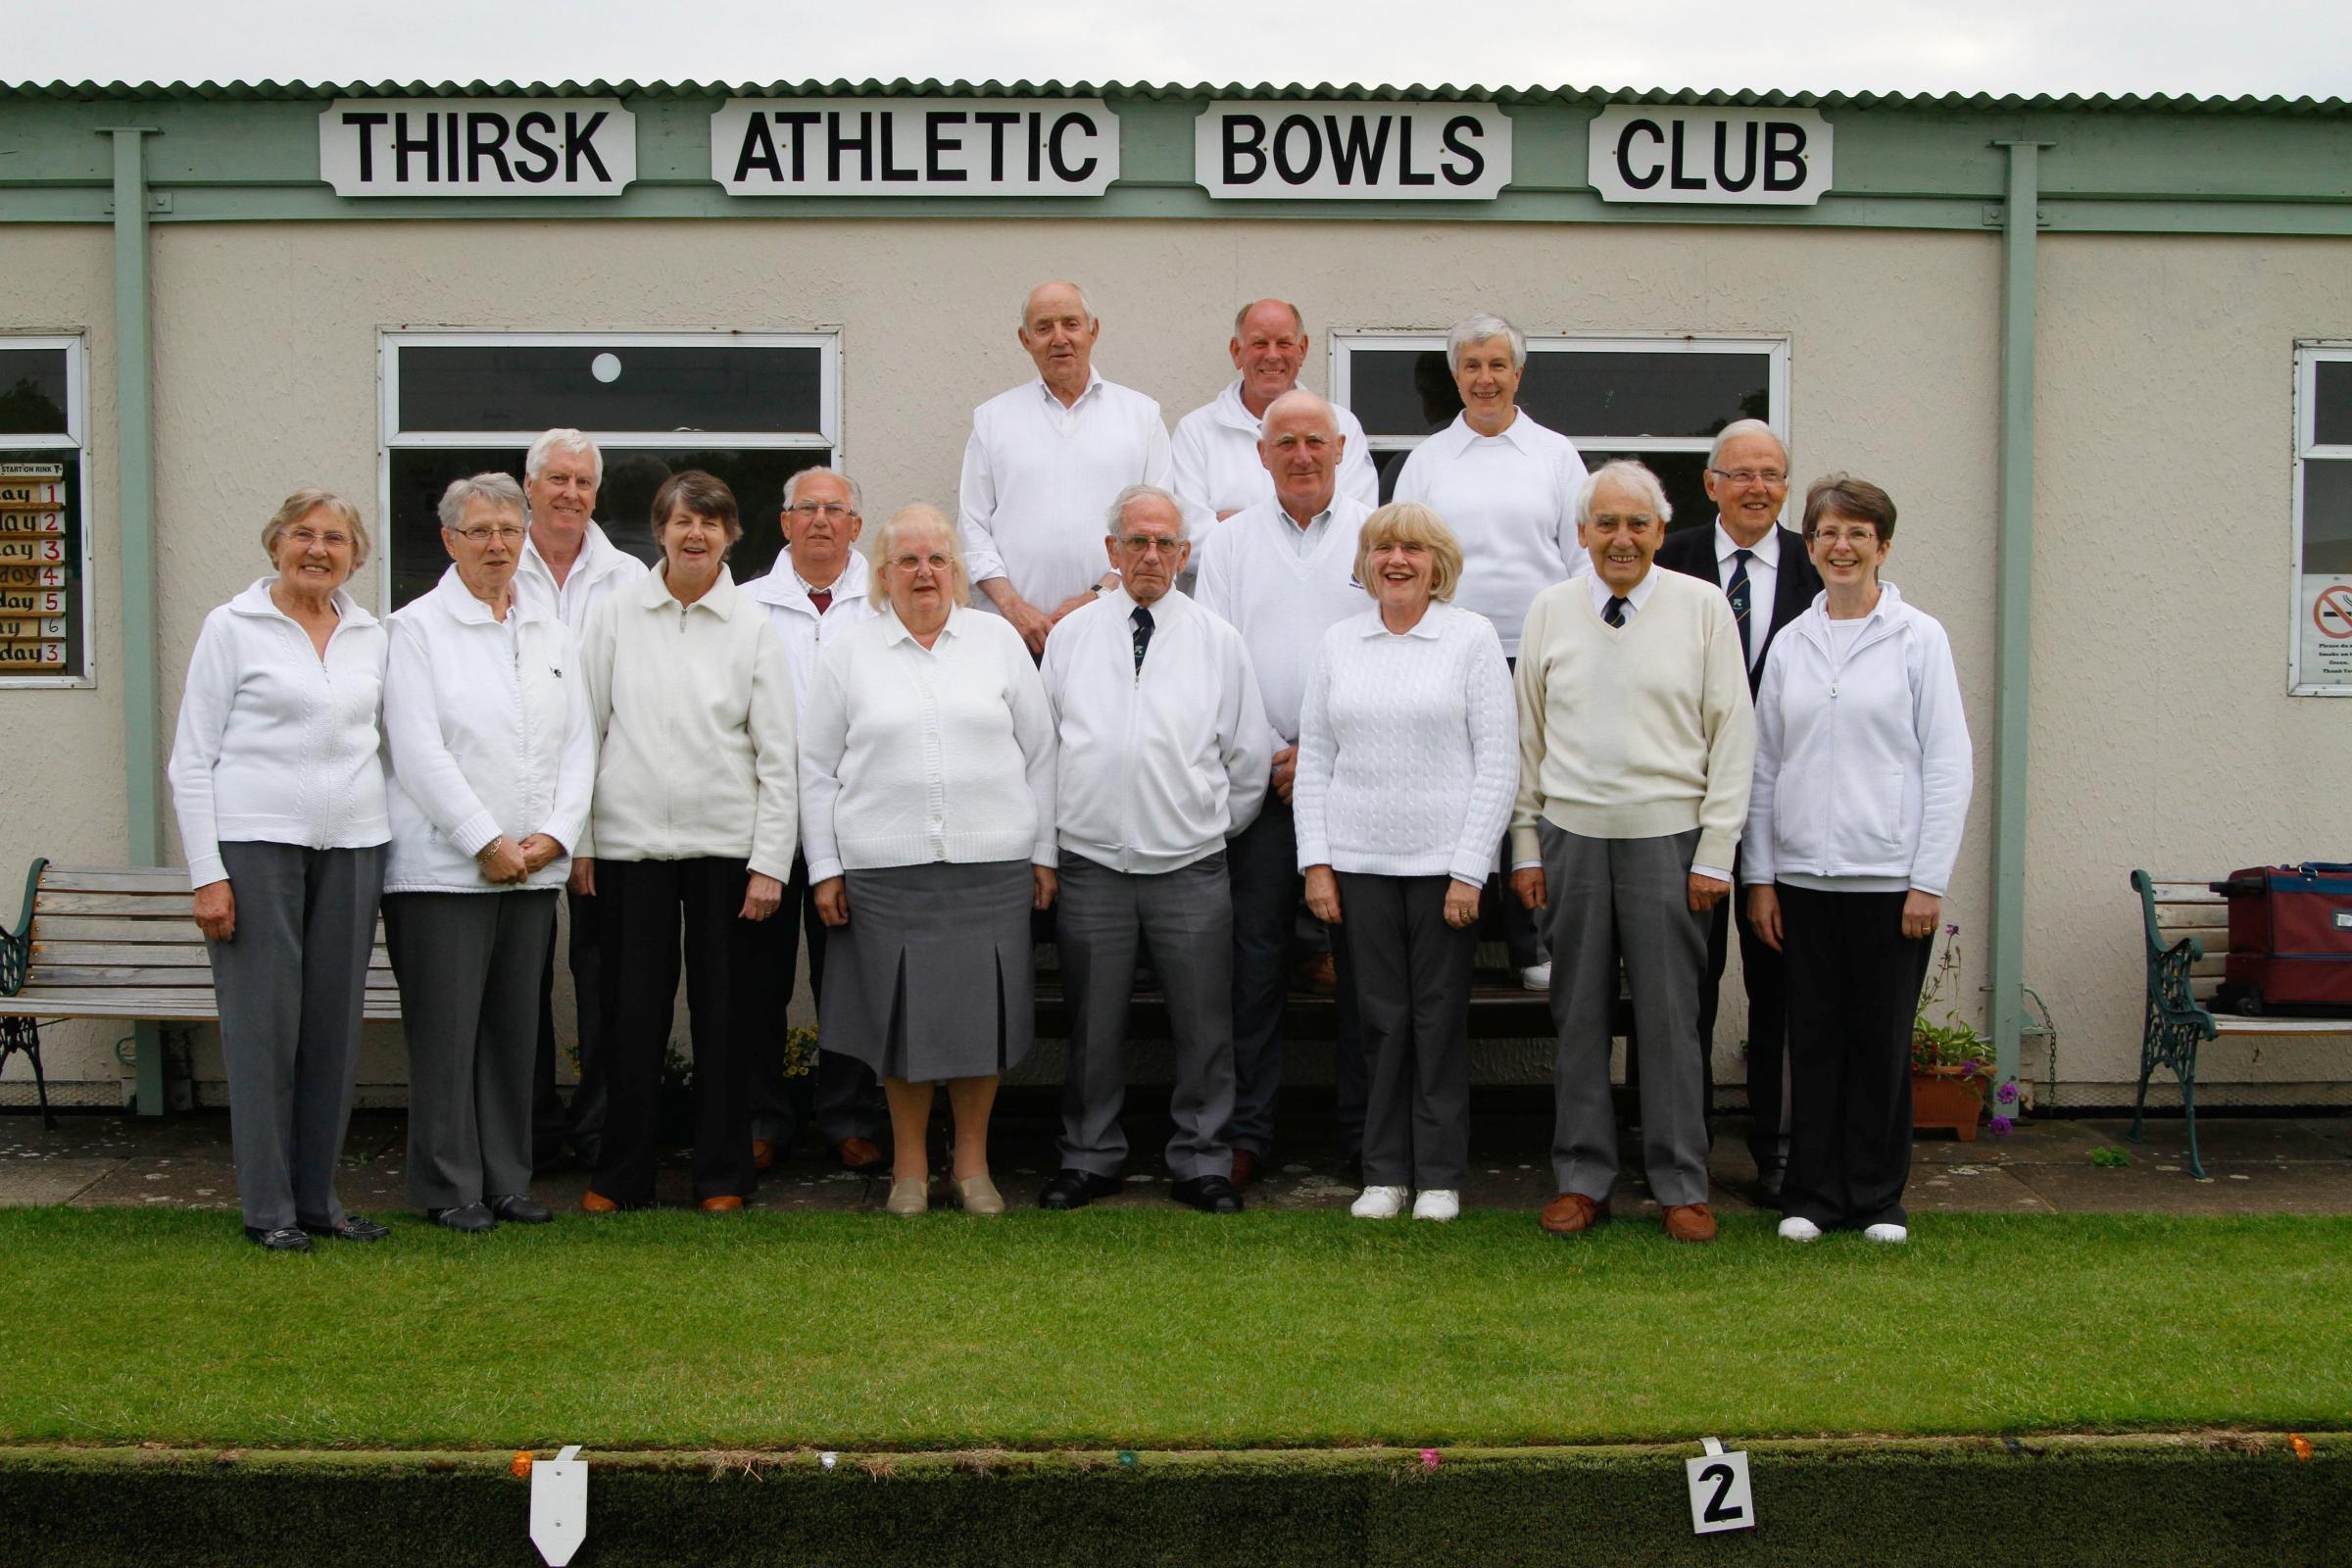 FUNDRAISERS: Members of Thirsk Athletic Bowling Club, who are planning an all-night fundraising bowls session